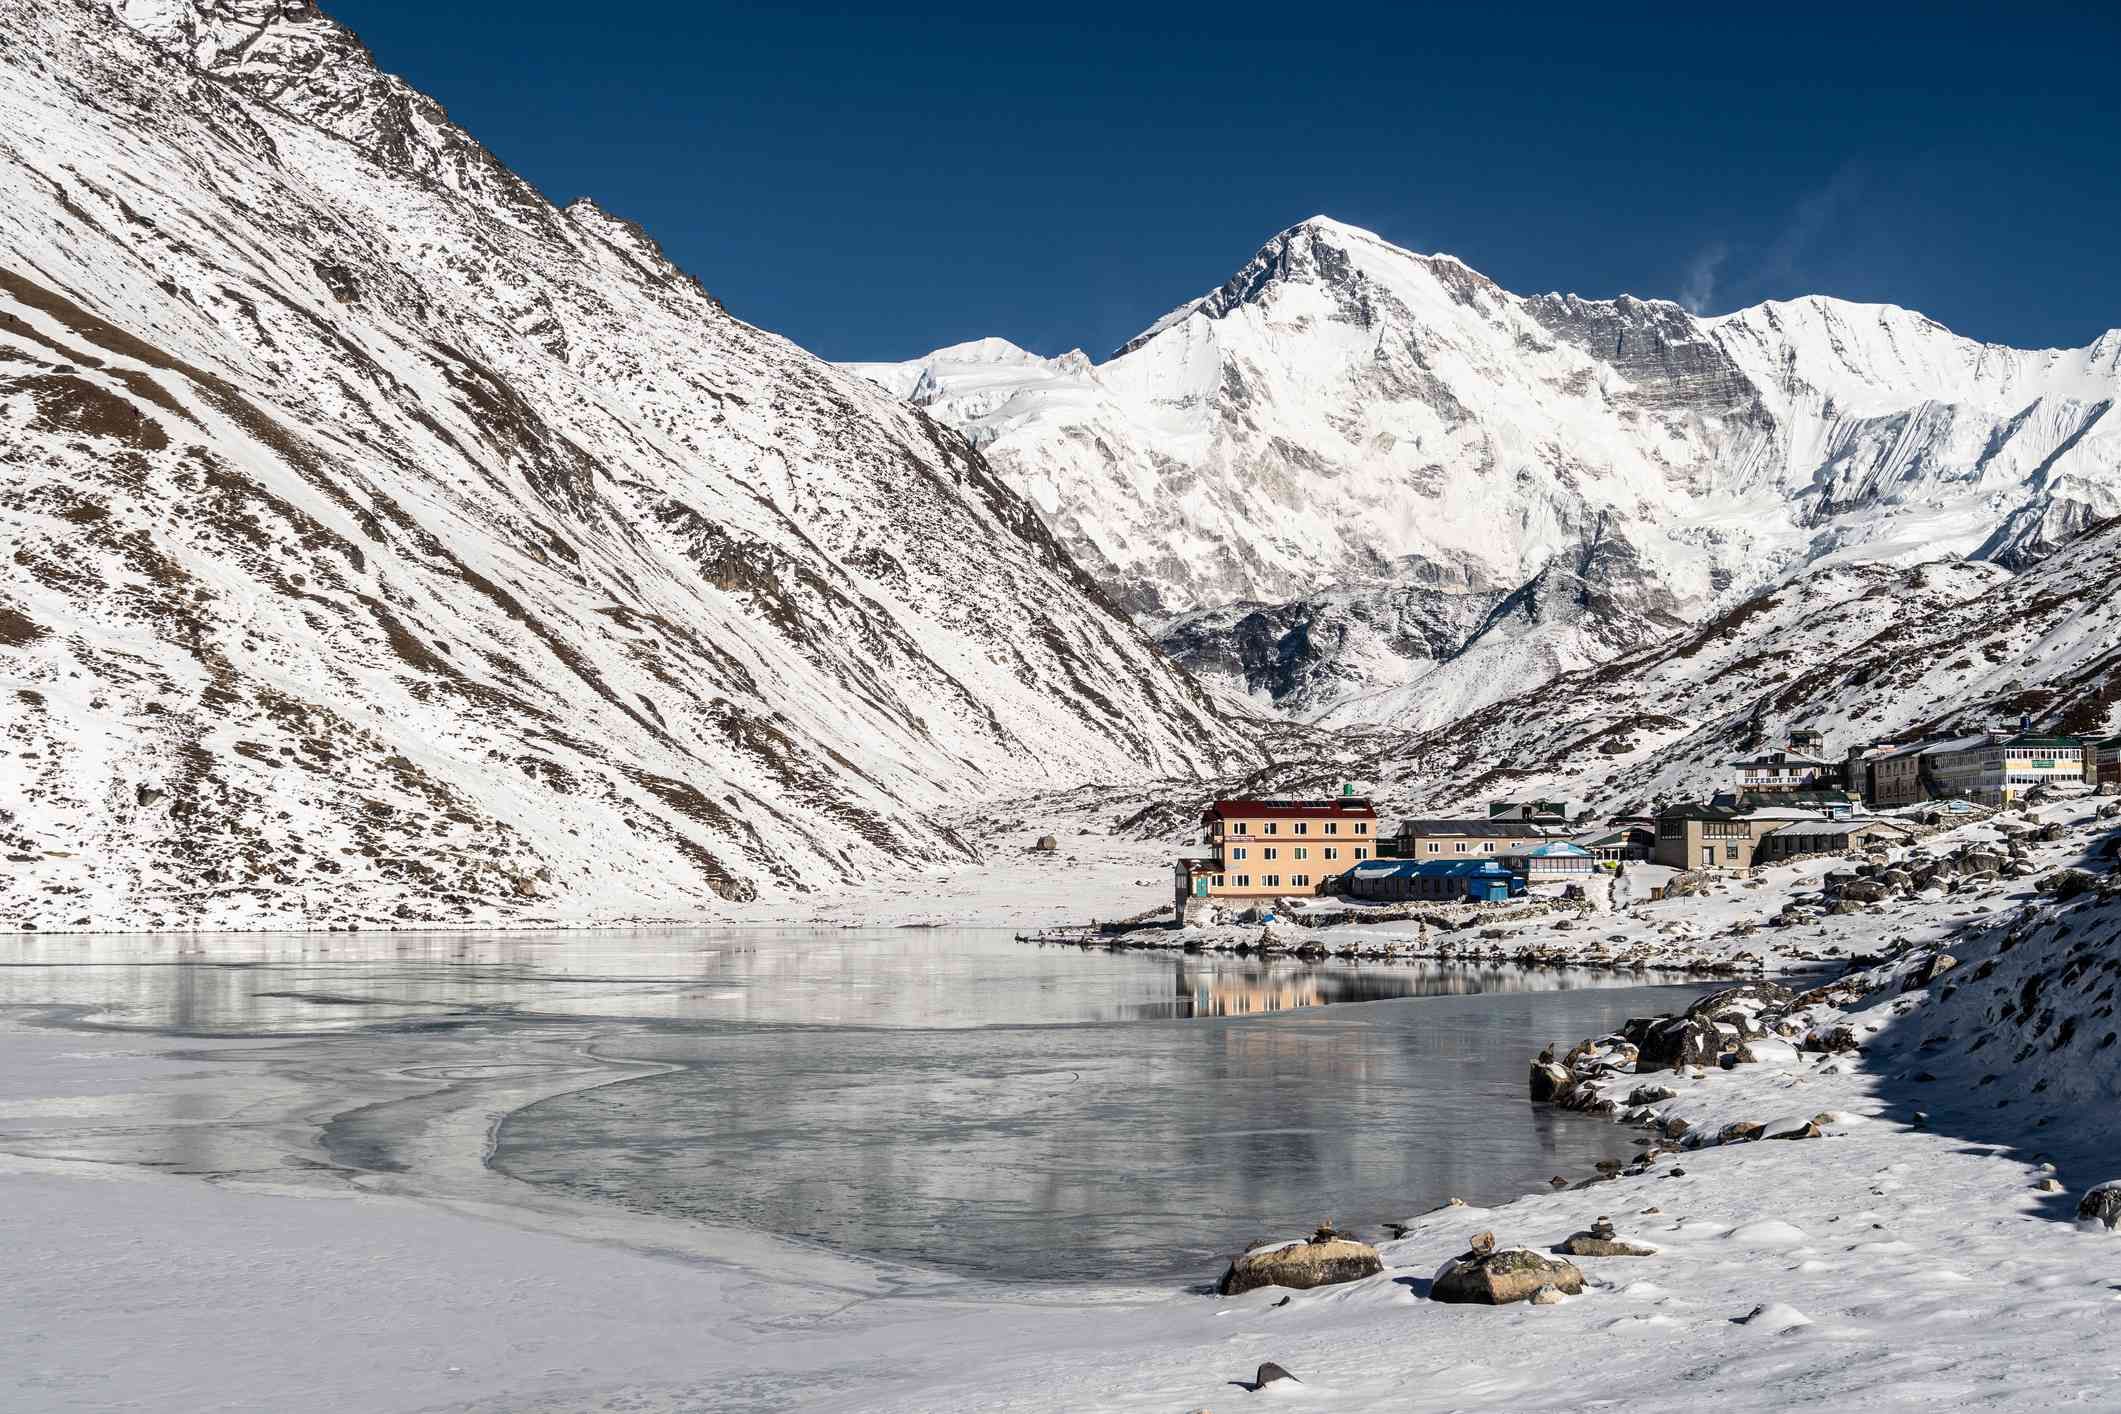 Gokyo village with the Cho Oyu peak in the background